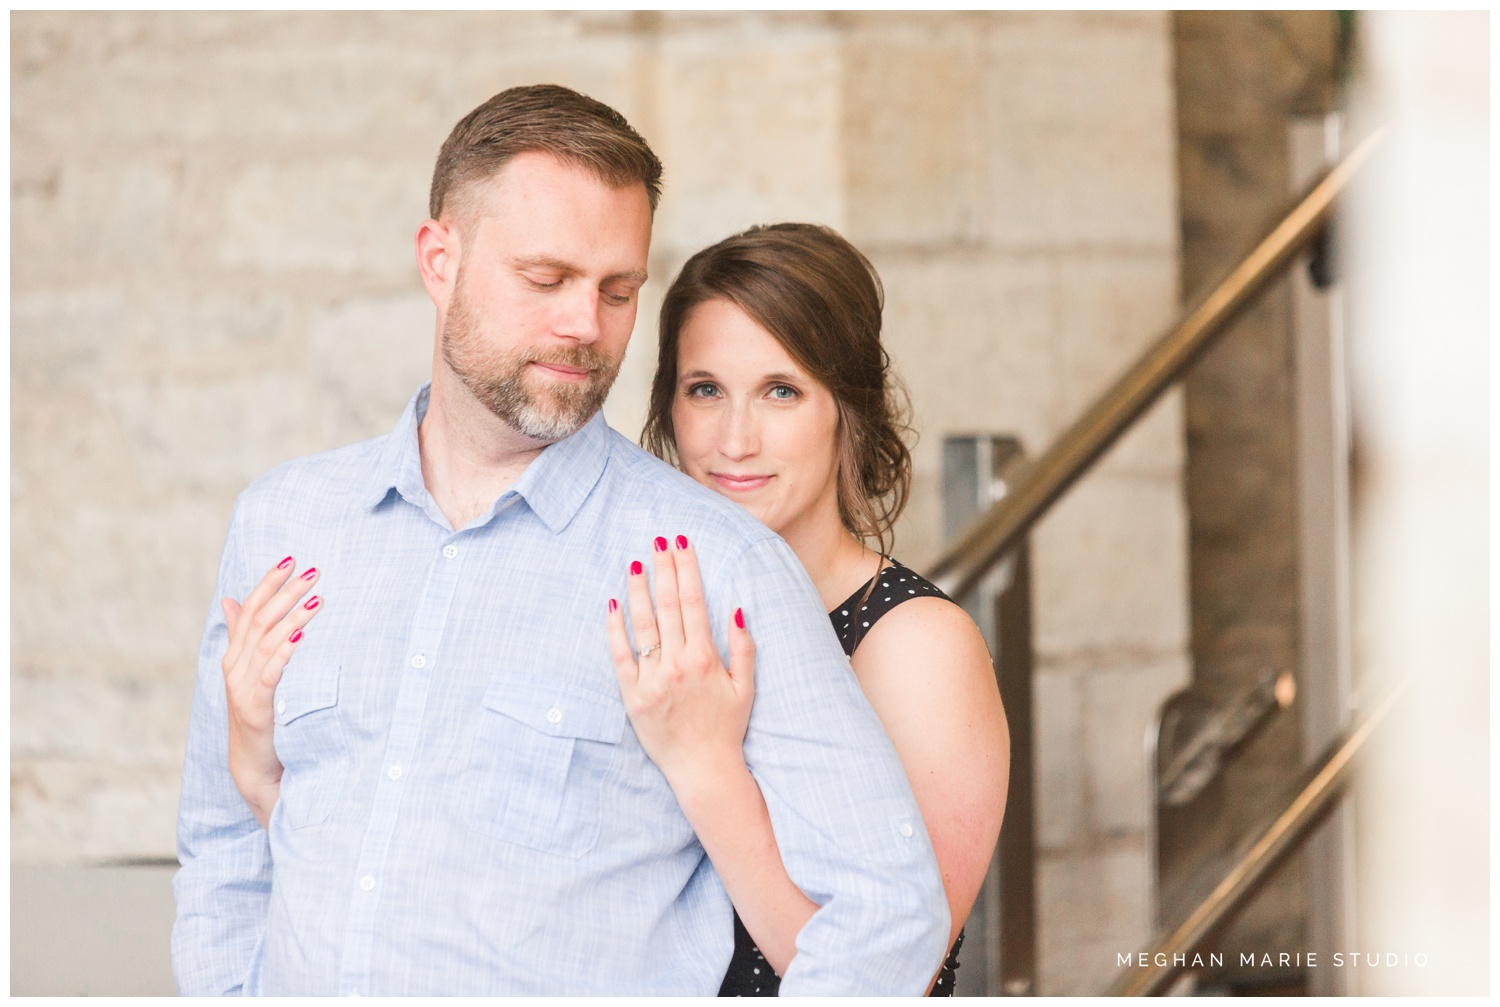 downtown-troy-urban-vintage-engagement-wedding-photography-hayner-cultural-center-meghan-marie-studio_0167.jpg